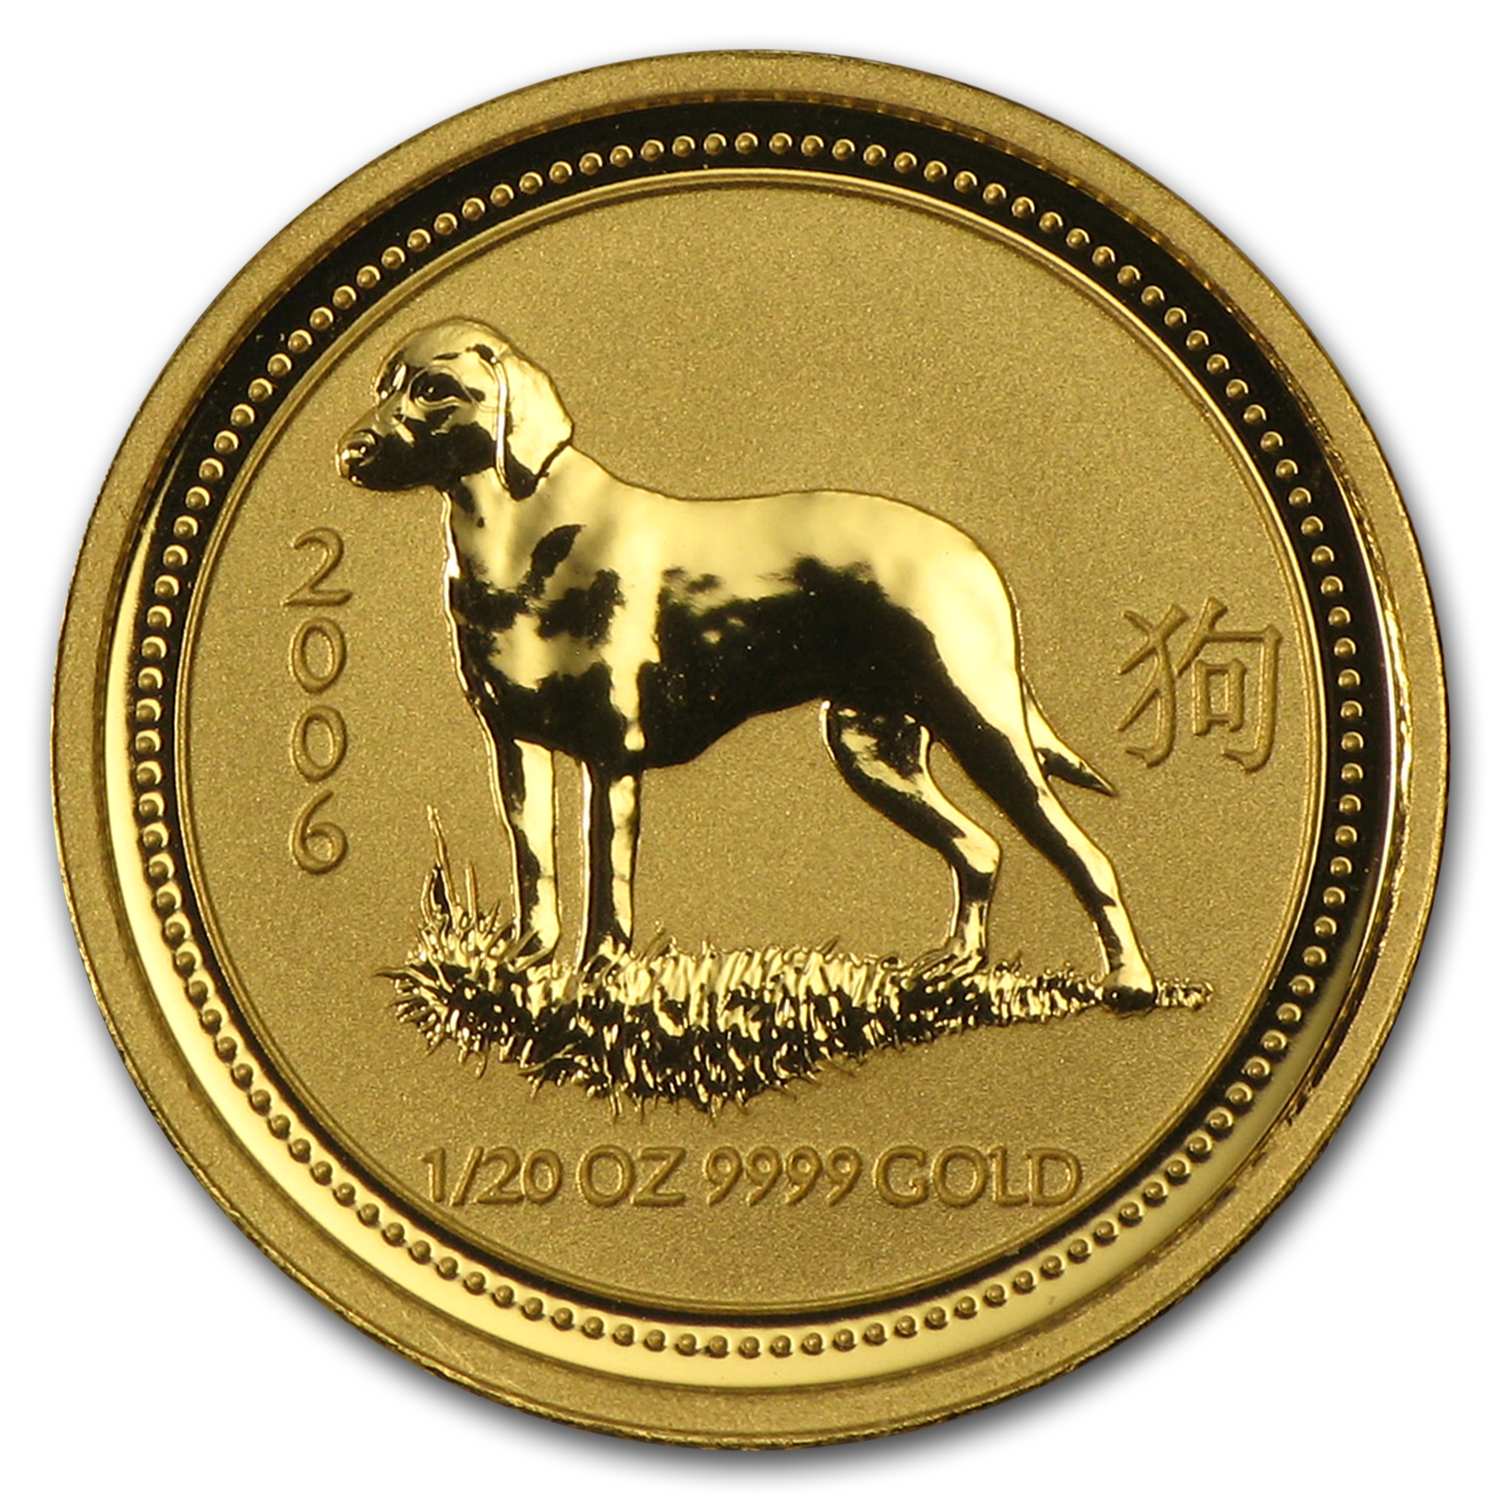 2006 Australia 1/20 oz Gold Lunar Dog BU (Series I)